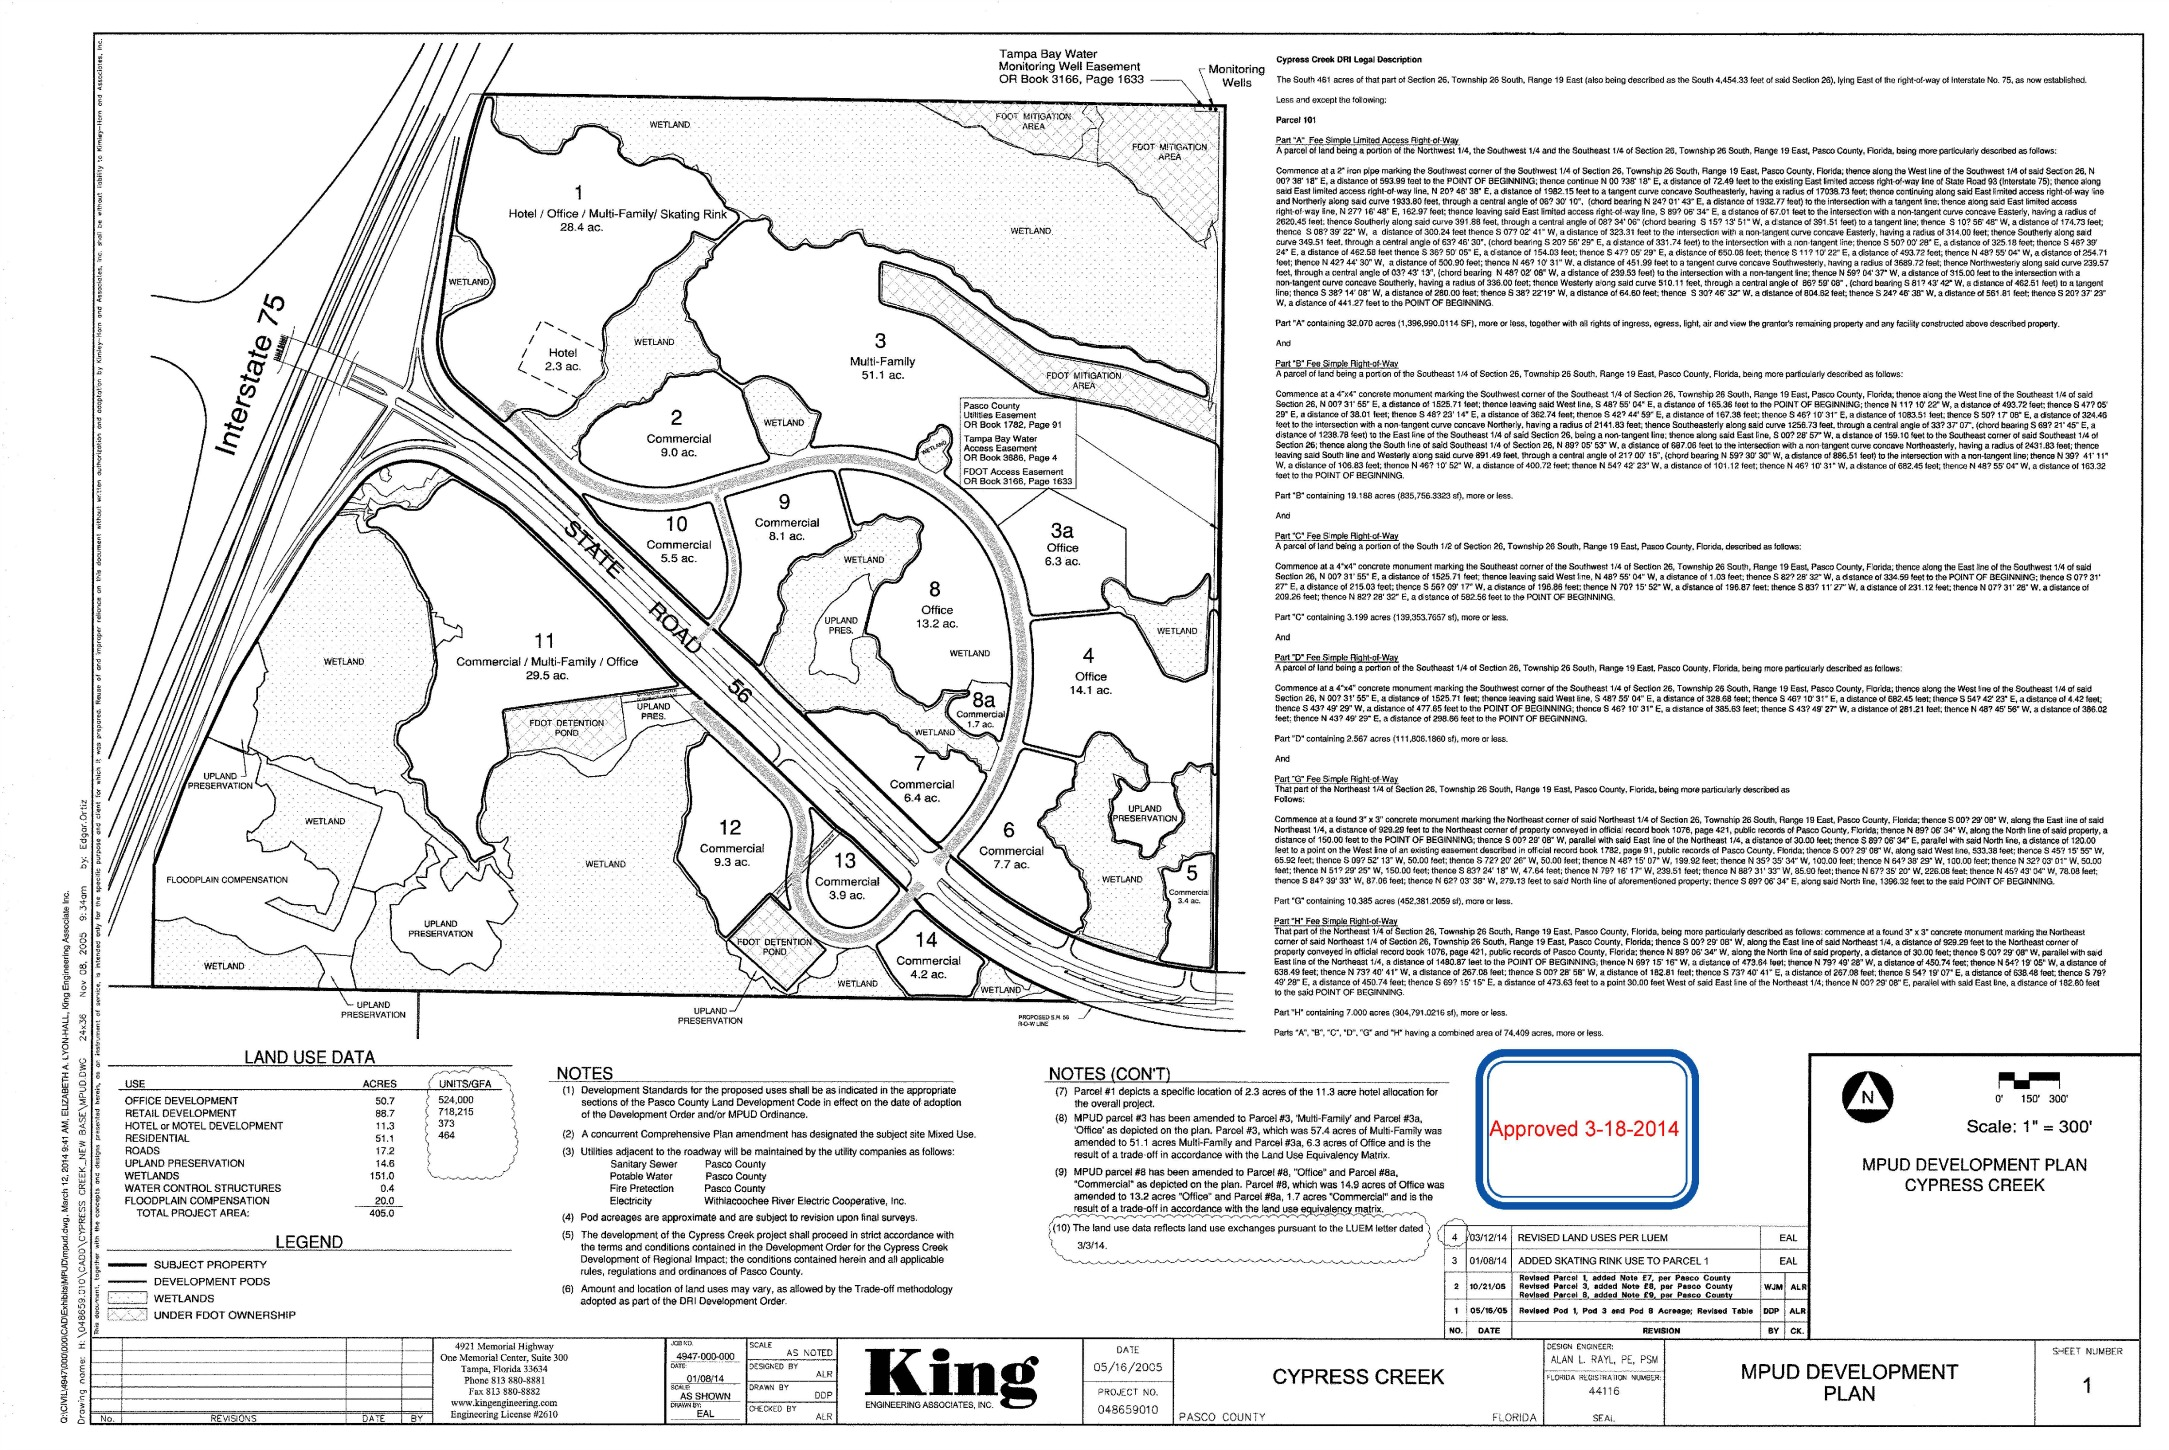 2014-03-18 Cypress Creek MPUD Master Plan.jpg